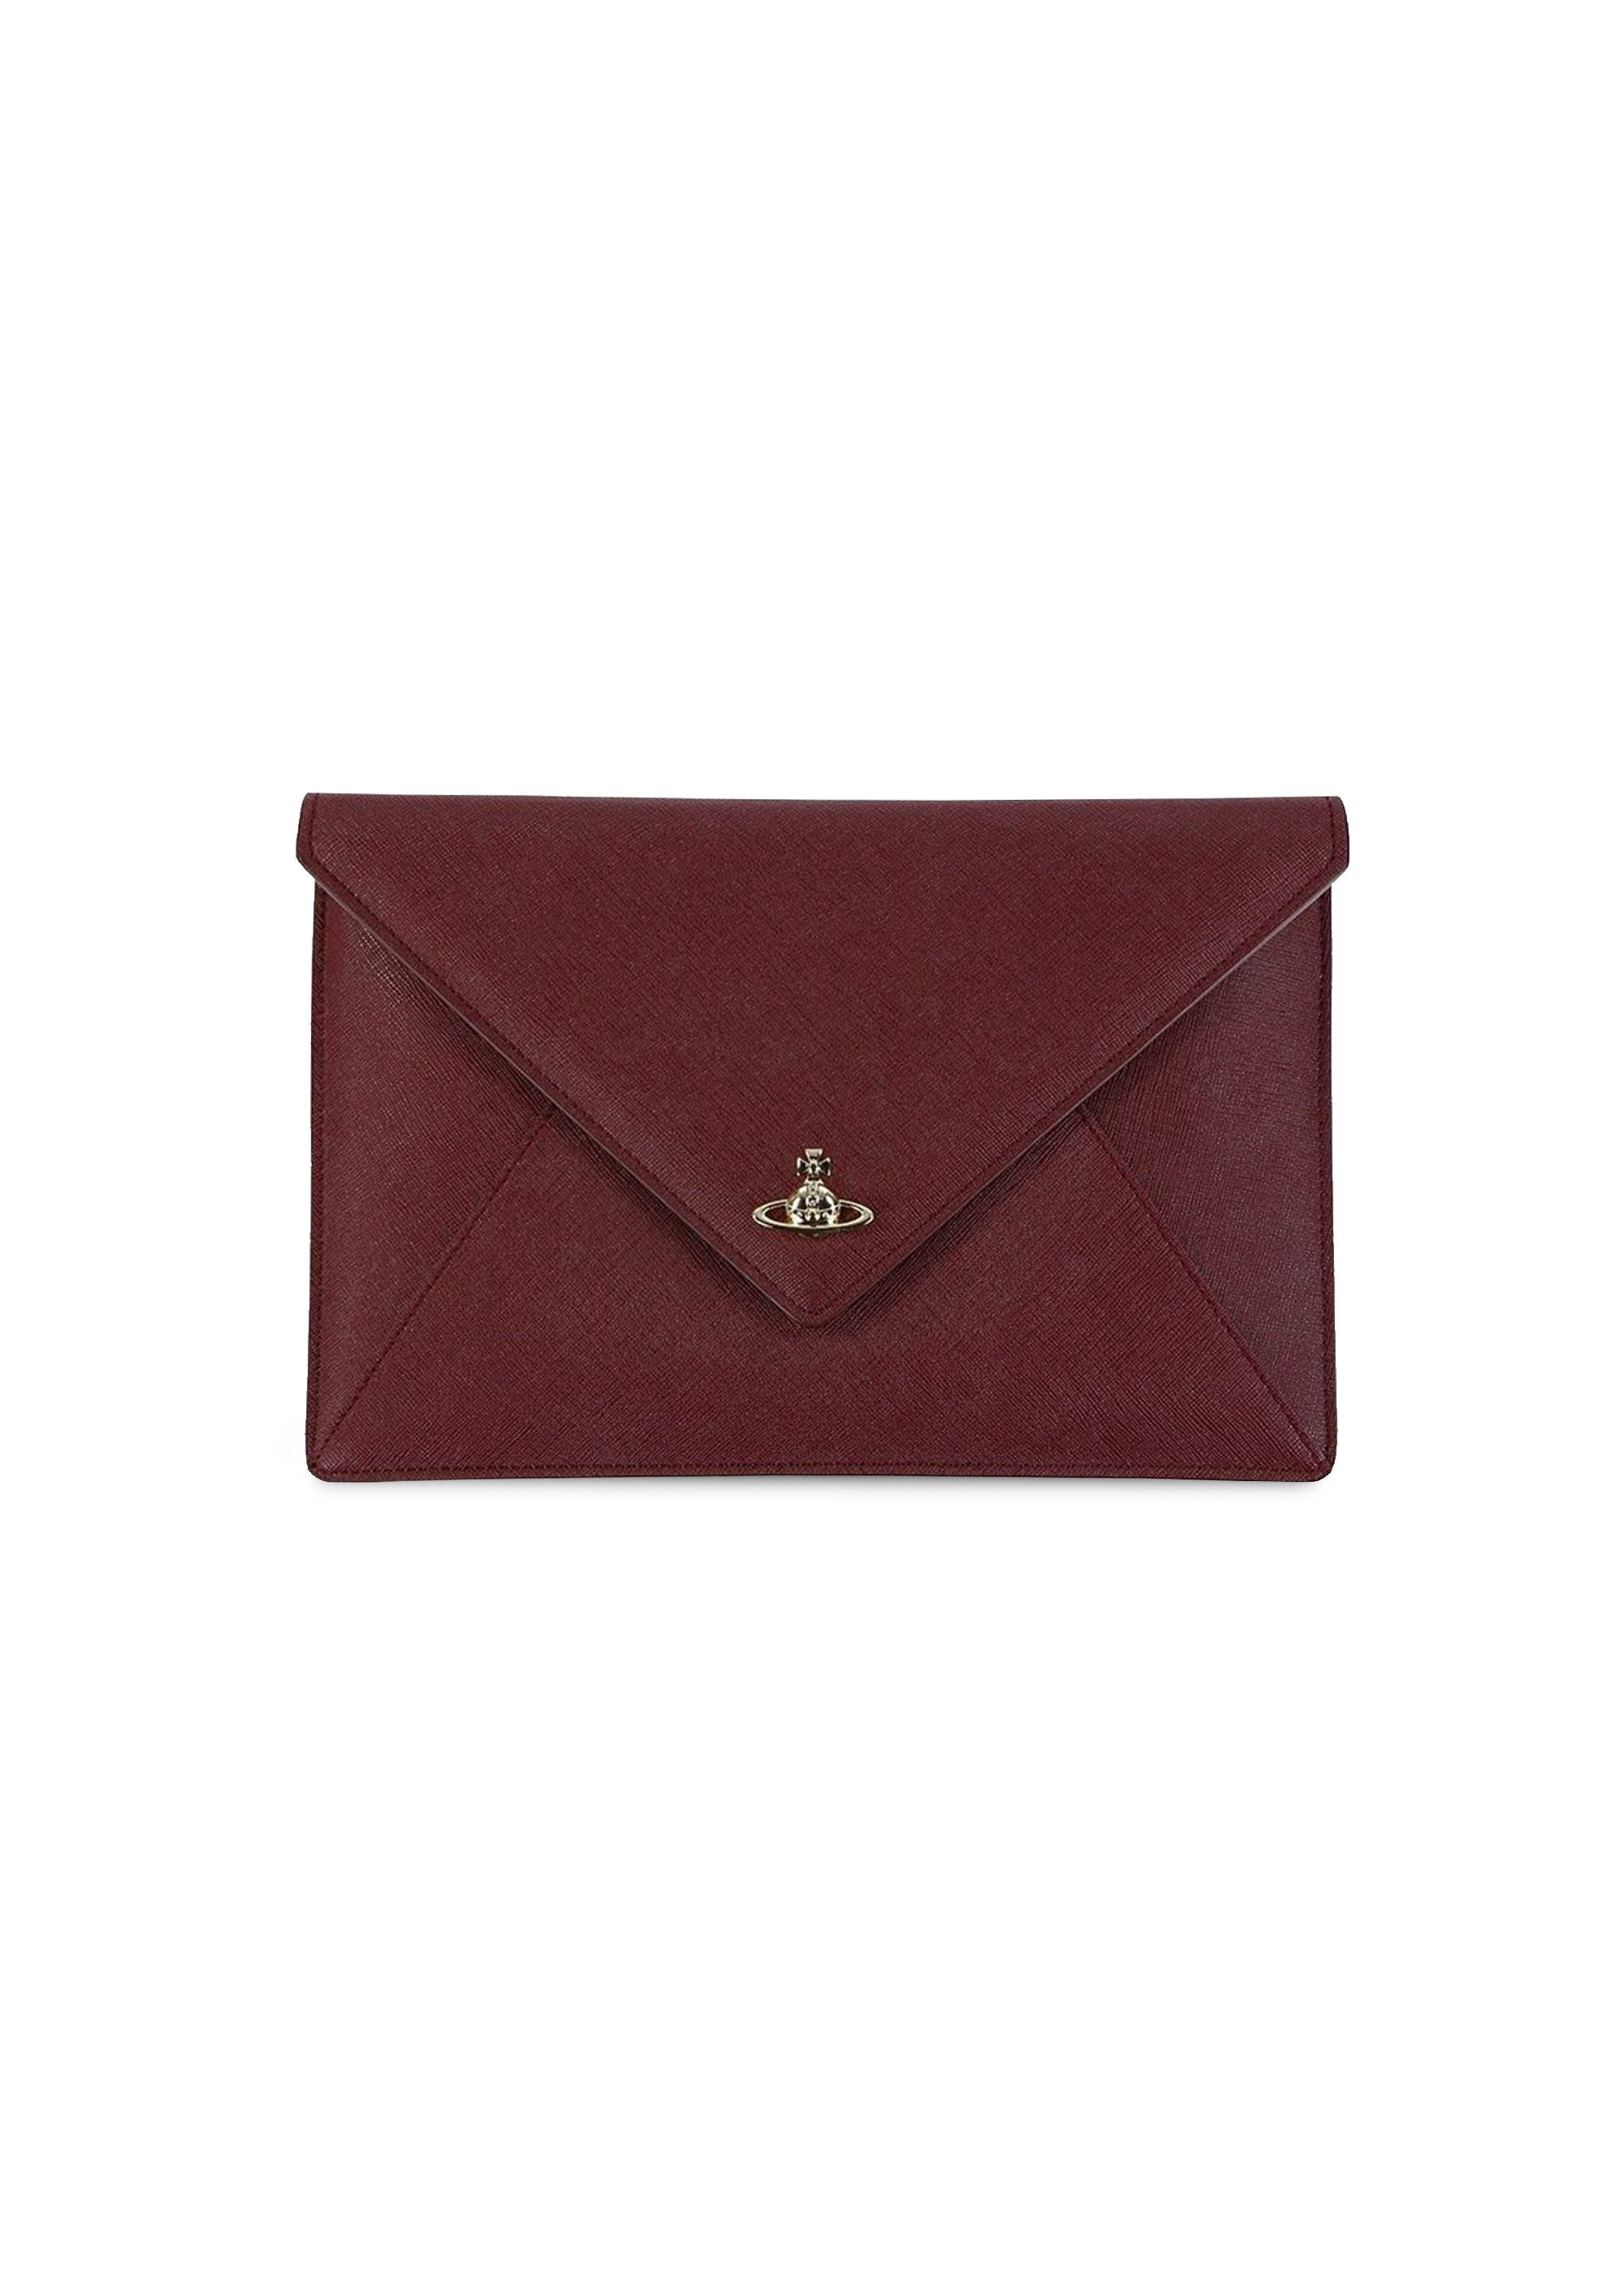 special for shoe sneakers classic style Vivienne Westwood Accessories Victoria Envelope Clutch - Burgundy